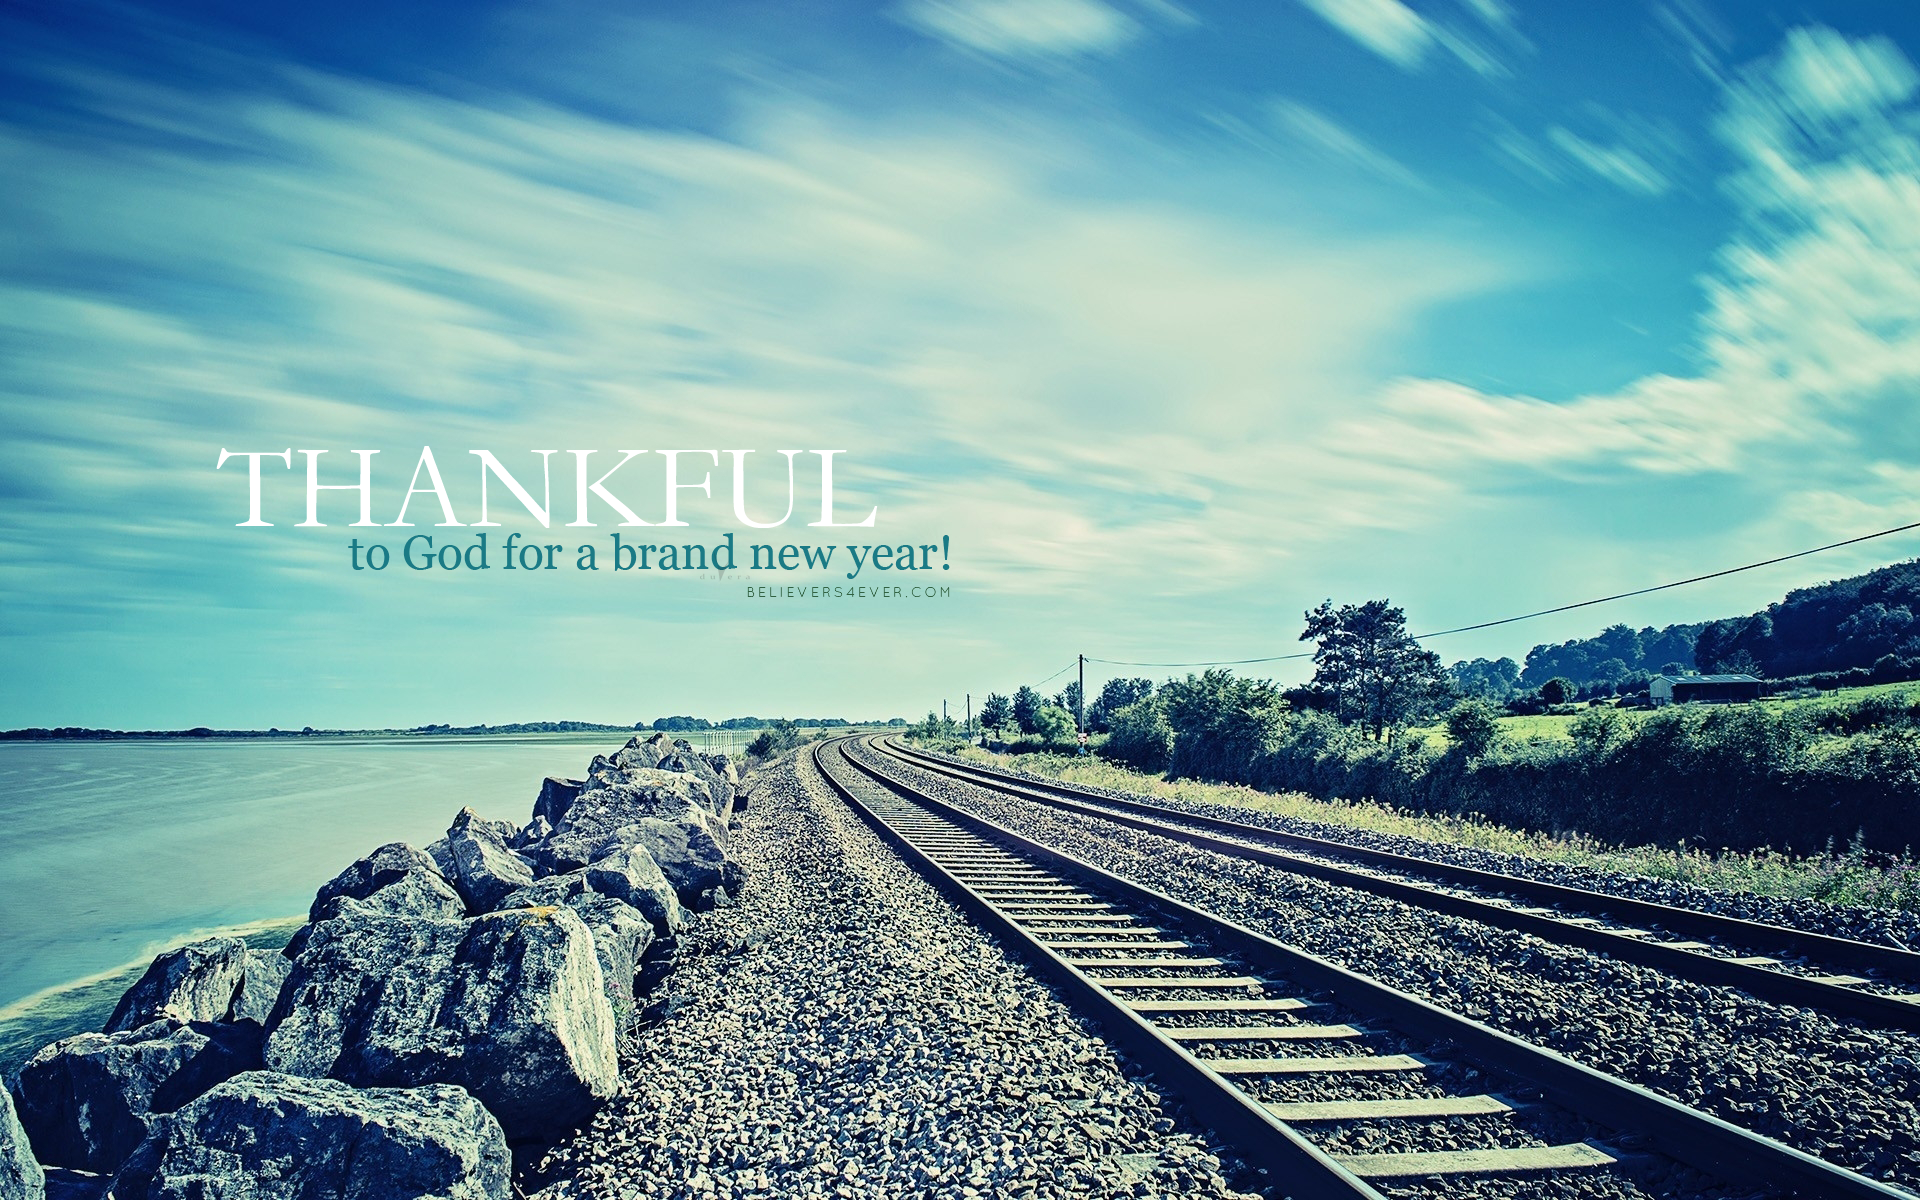 Thankful new year 2015 Christian wallpaper 1920x1200